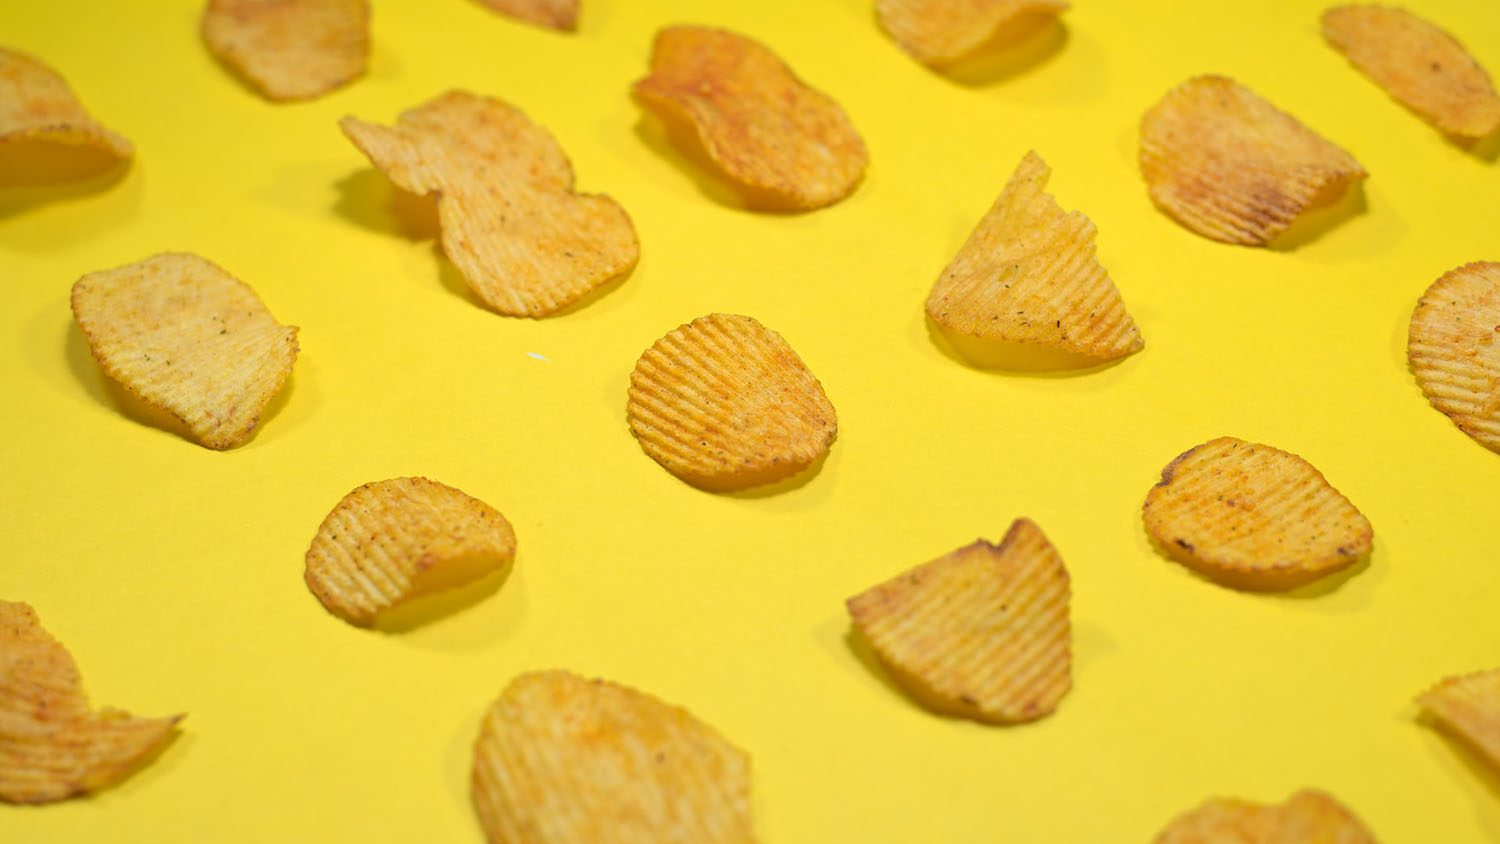 chips on yellow background